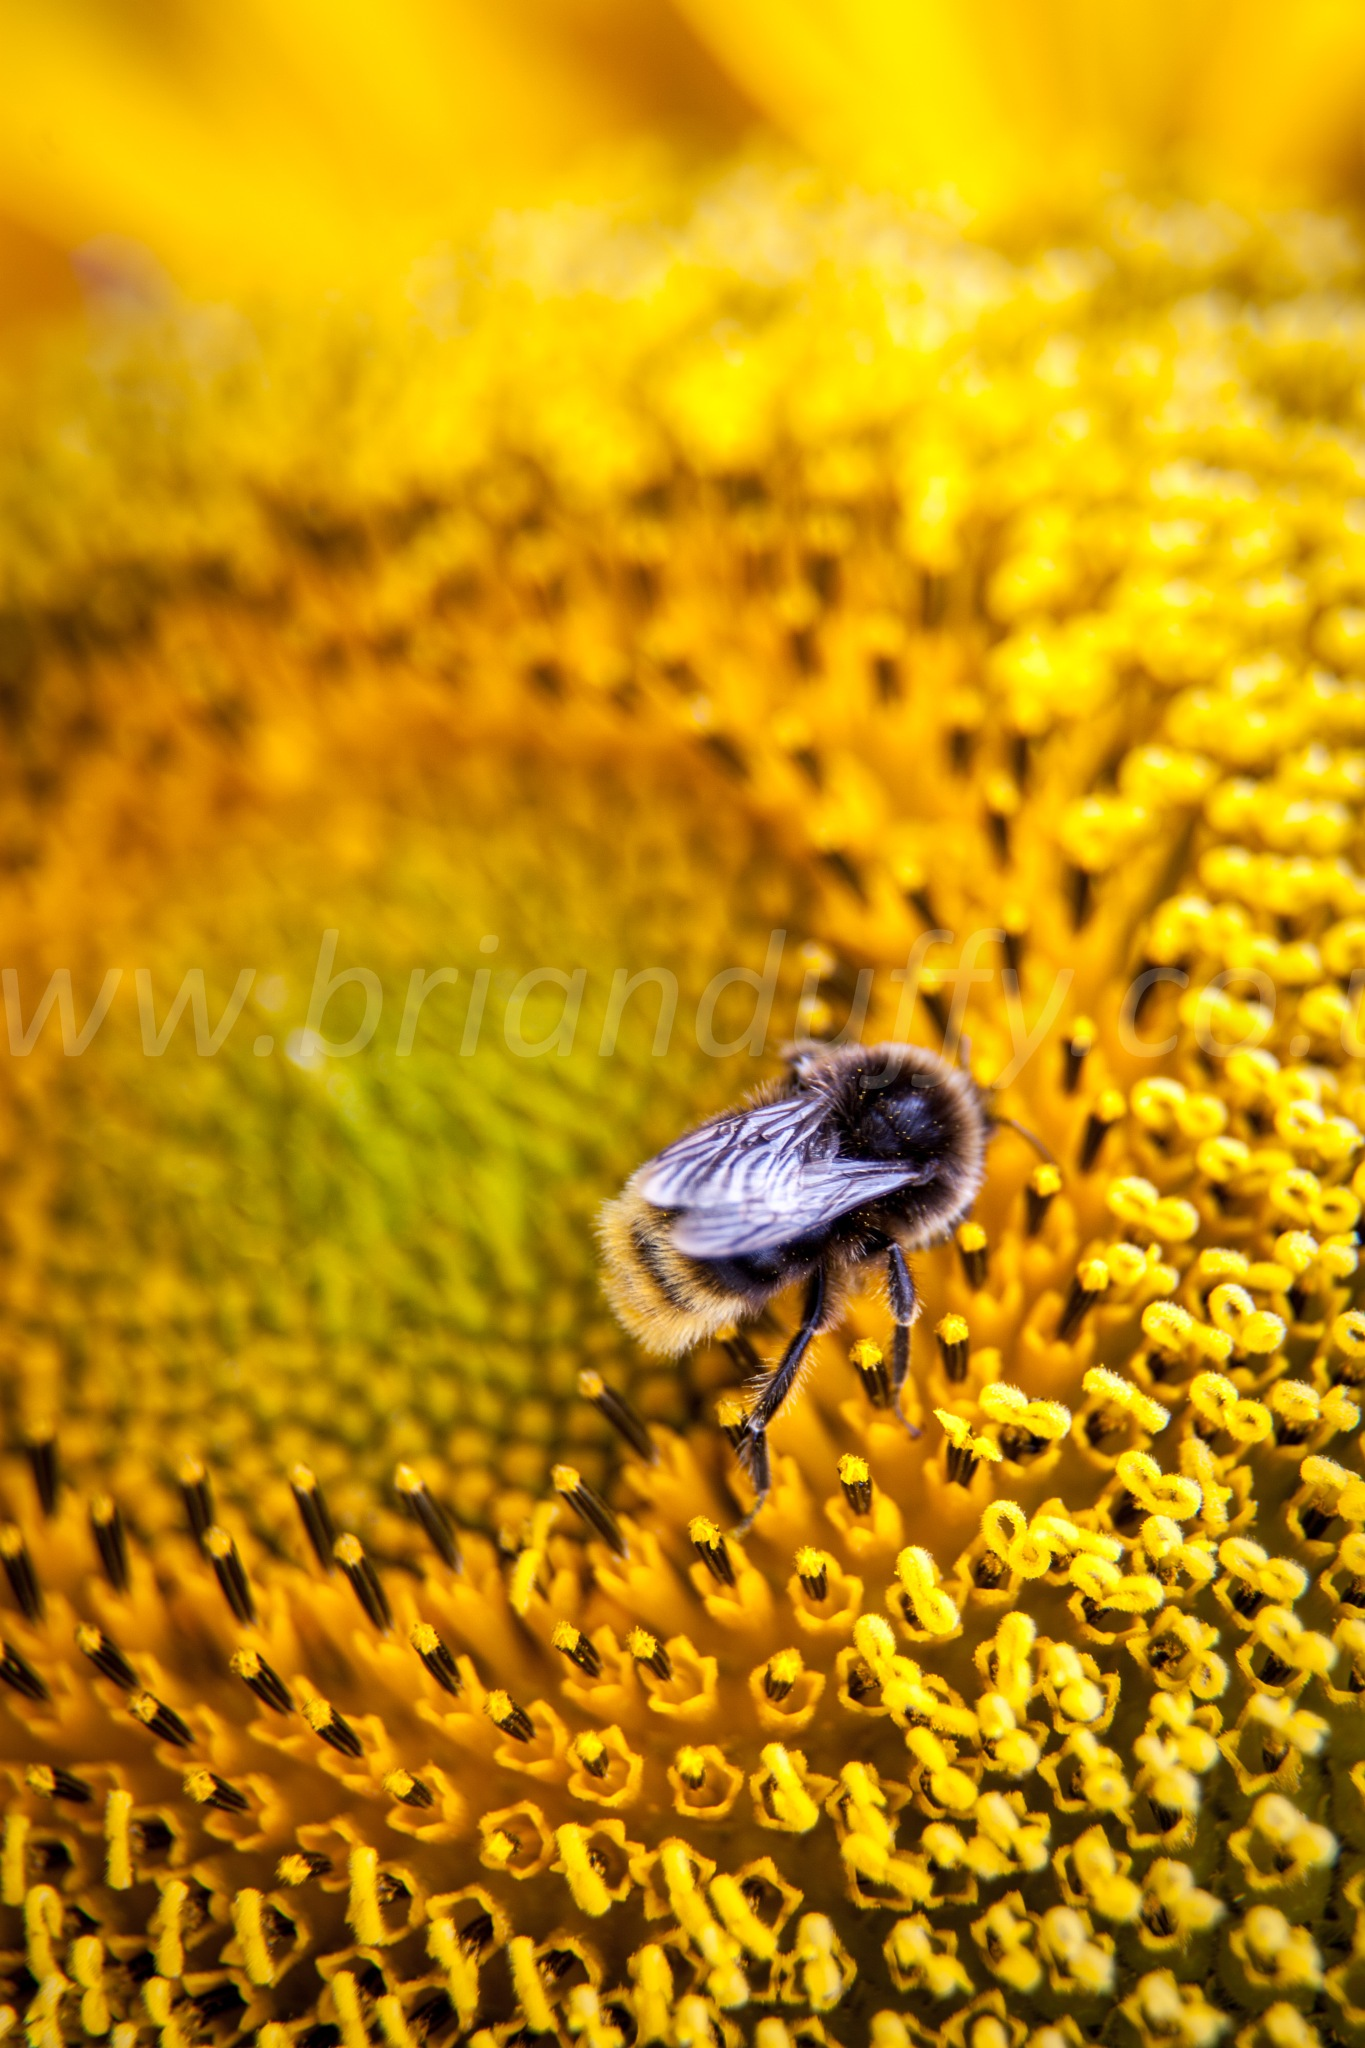 Bee on a sunflower by BrianDuffyPhoto